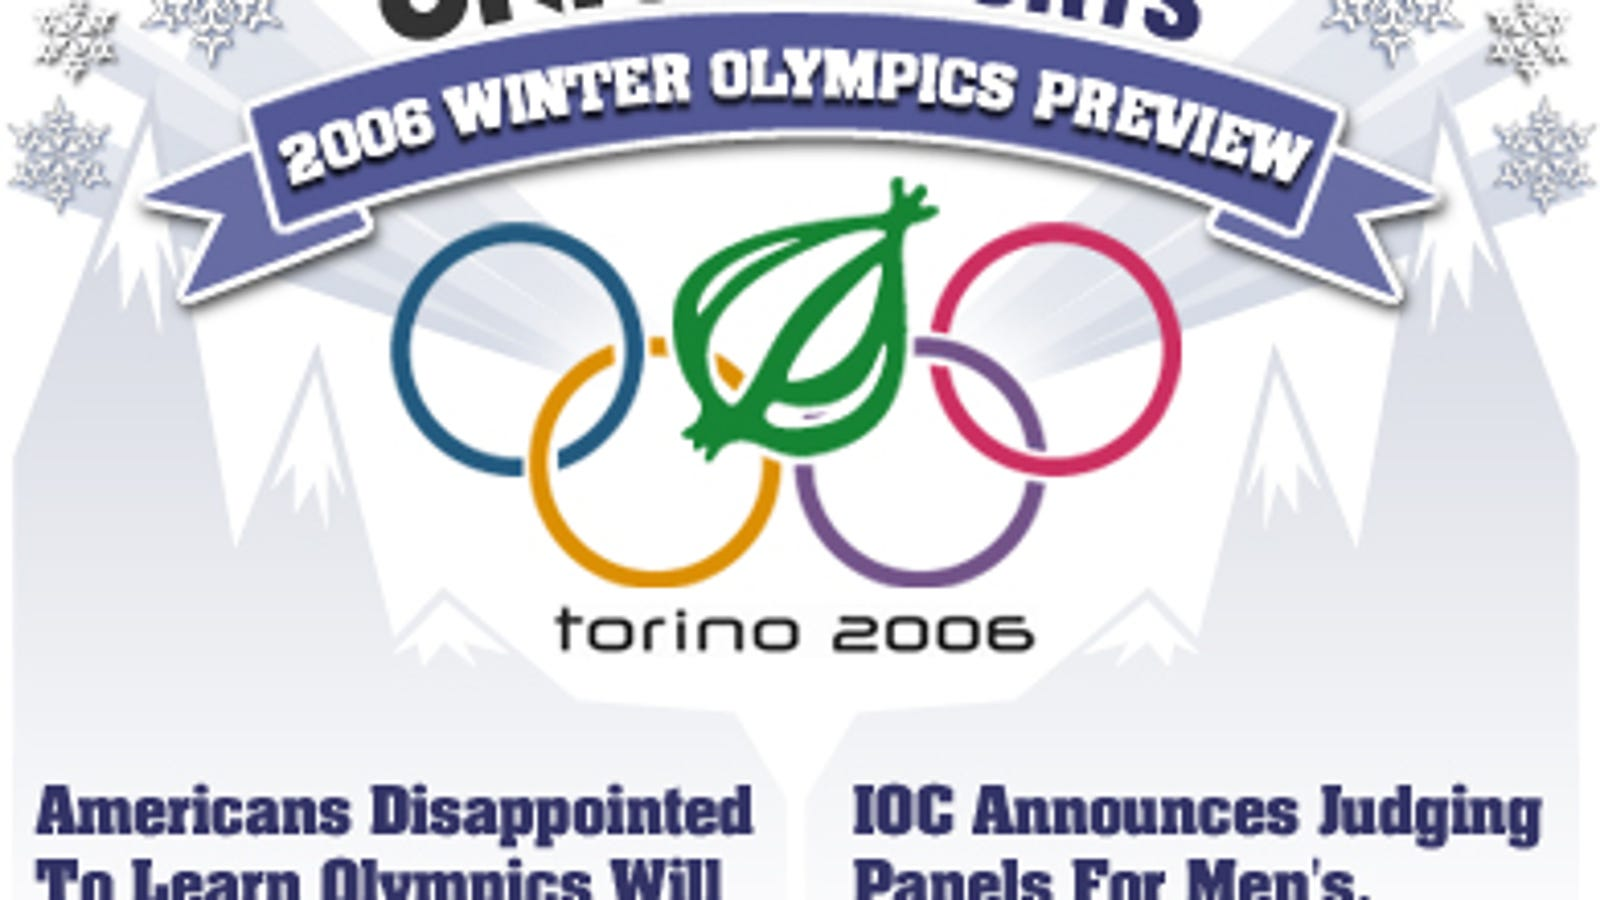 Onion Sports 2006 Winter Olympics Preview